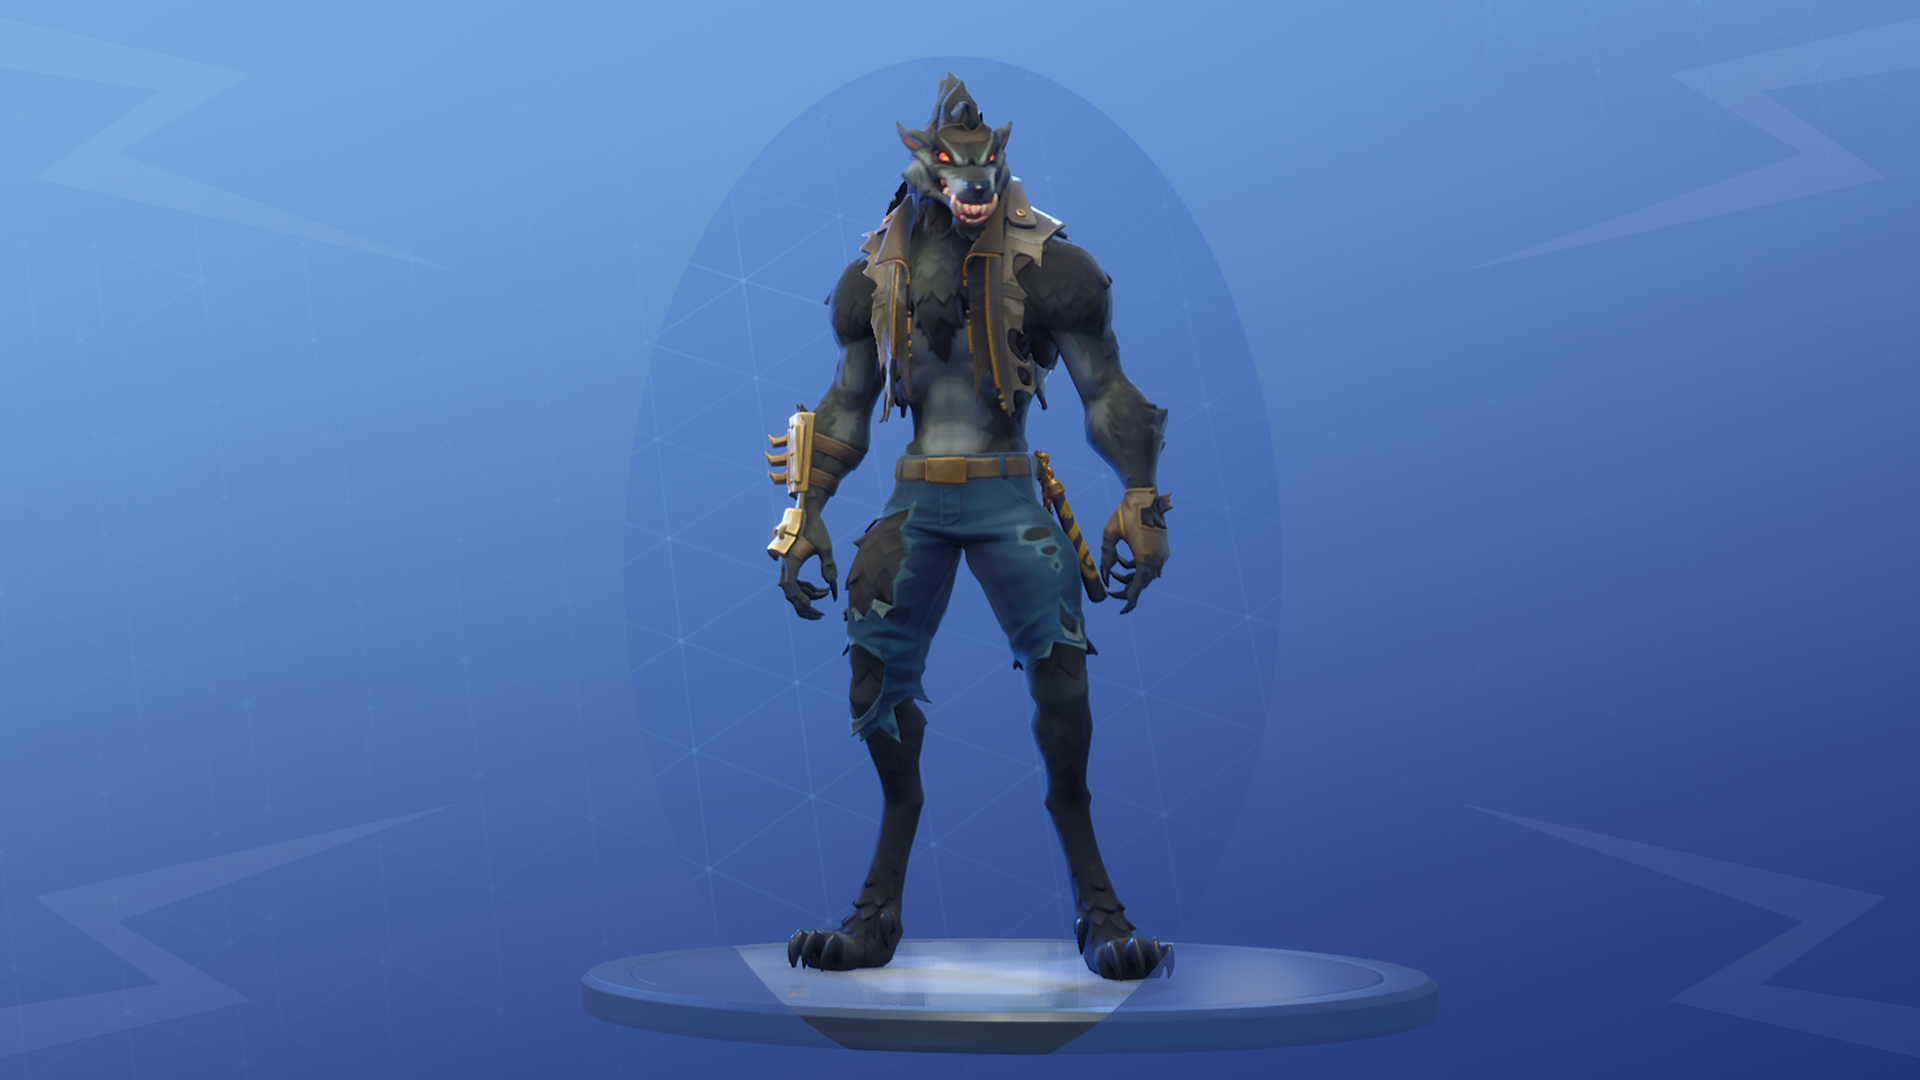 New Season 6 Progressive Skin Dire Tier 100 Fortnite News